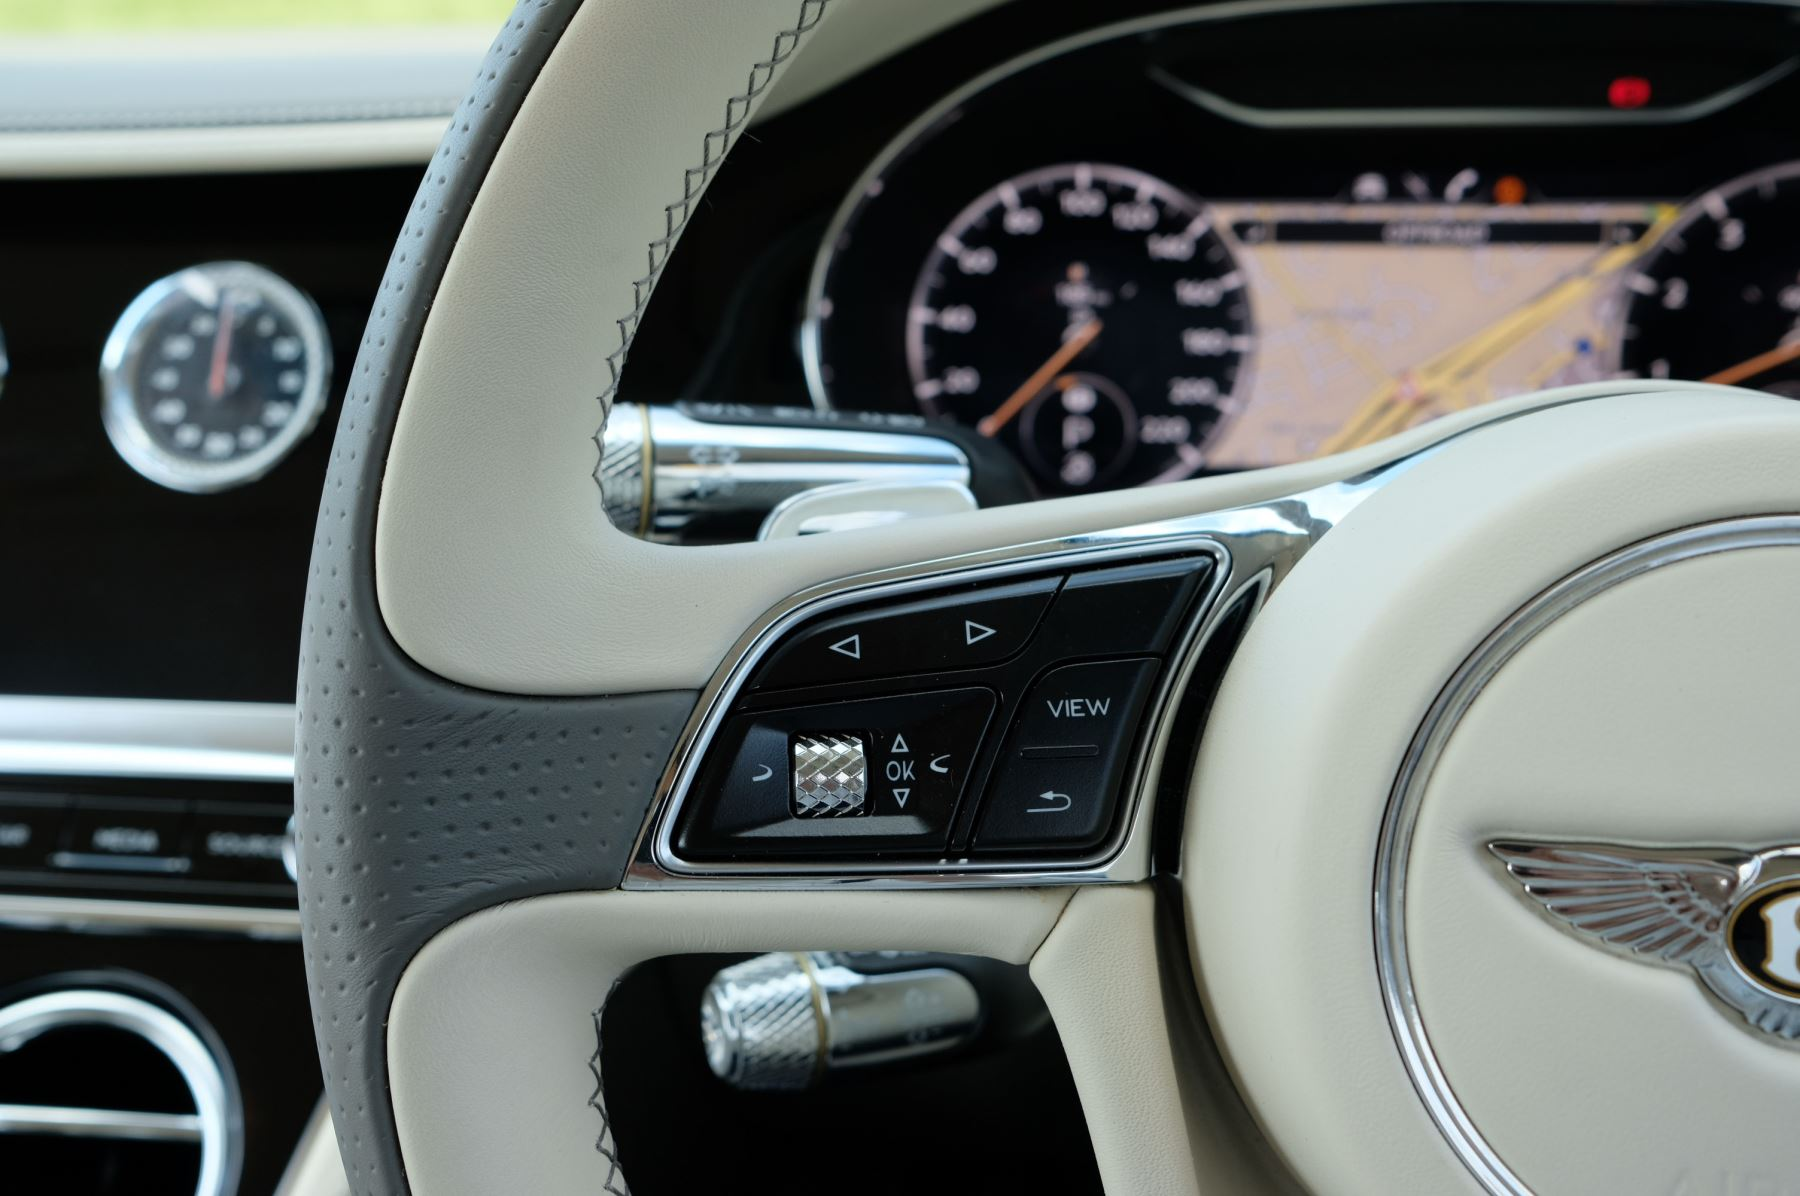 Bentley Continental GT 4.0 V8 - Mulliner Driving Specification with Black Painted Wheels - Touring and Centenary Spec image 30